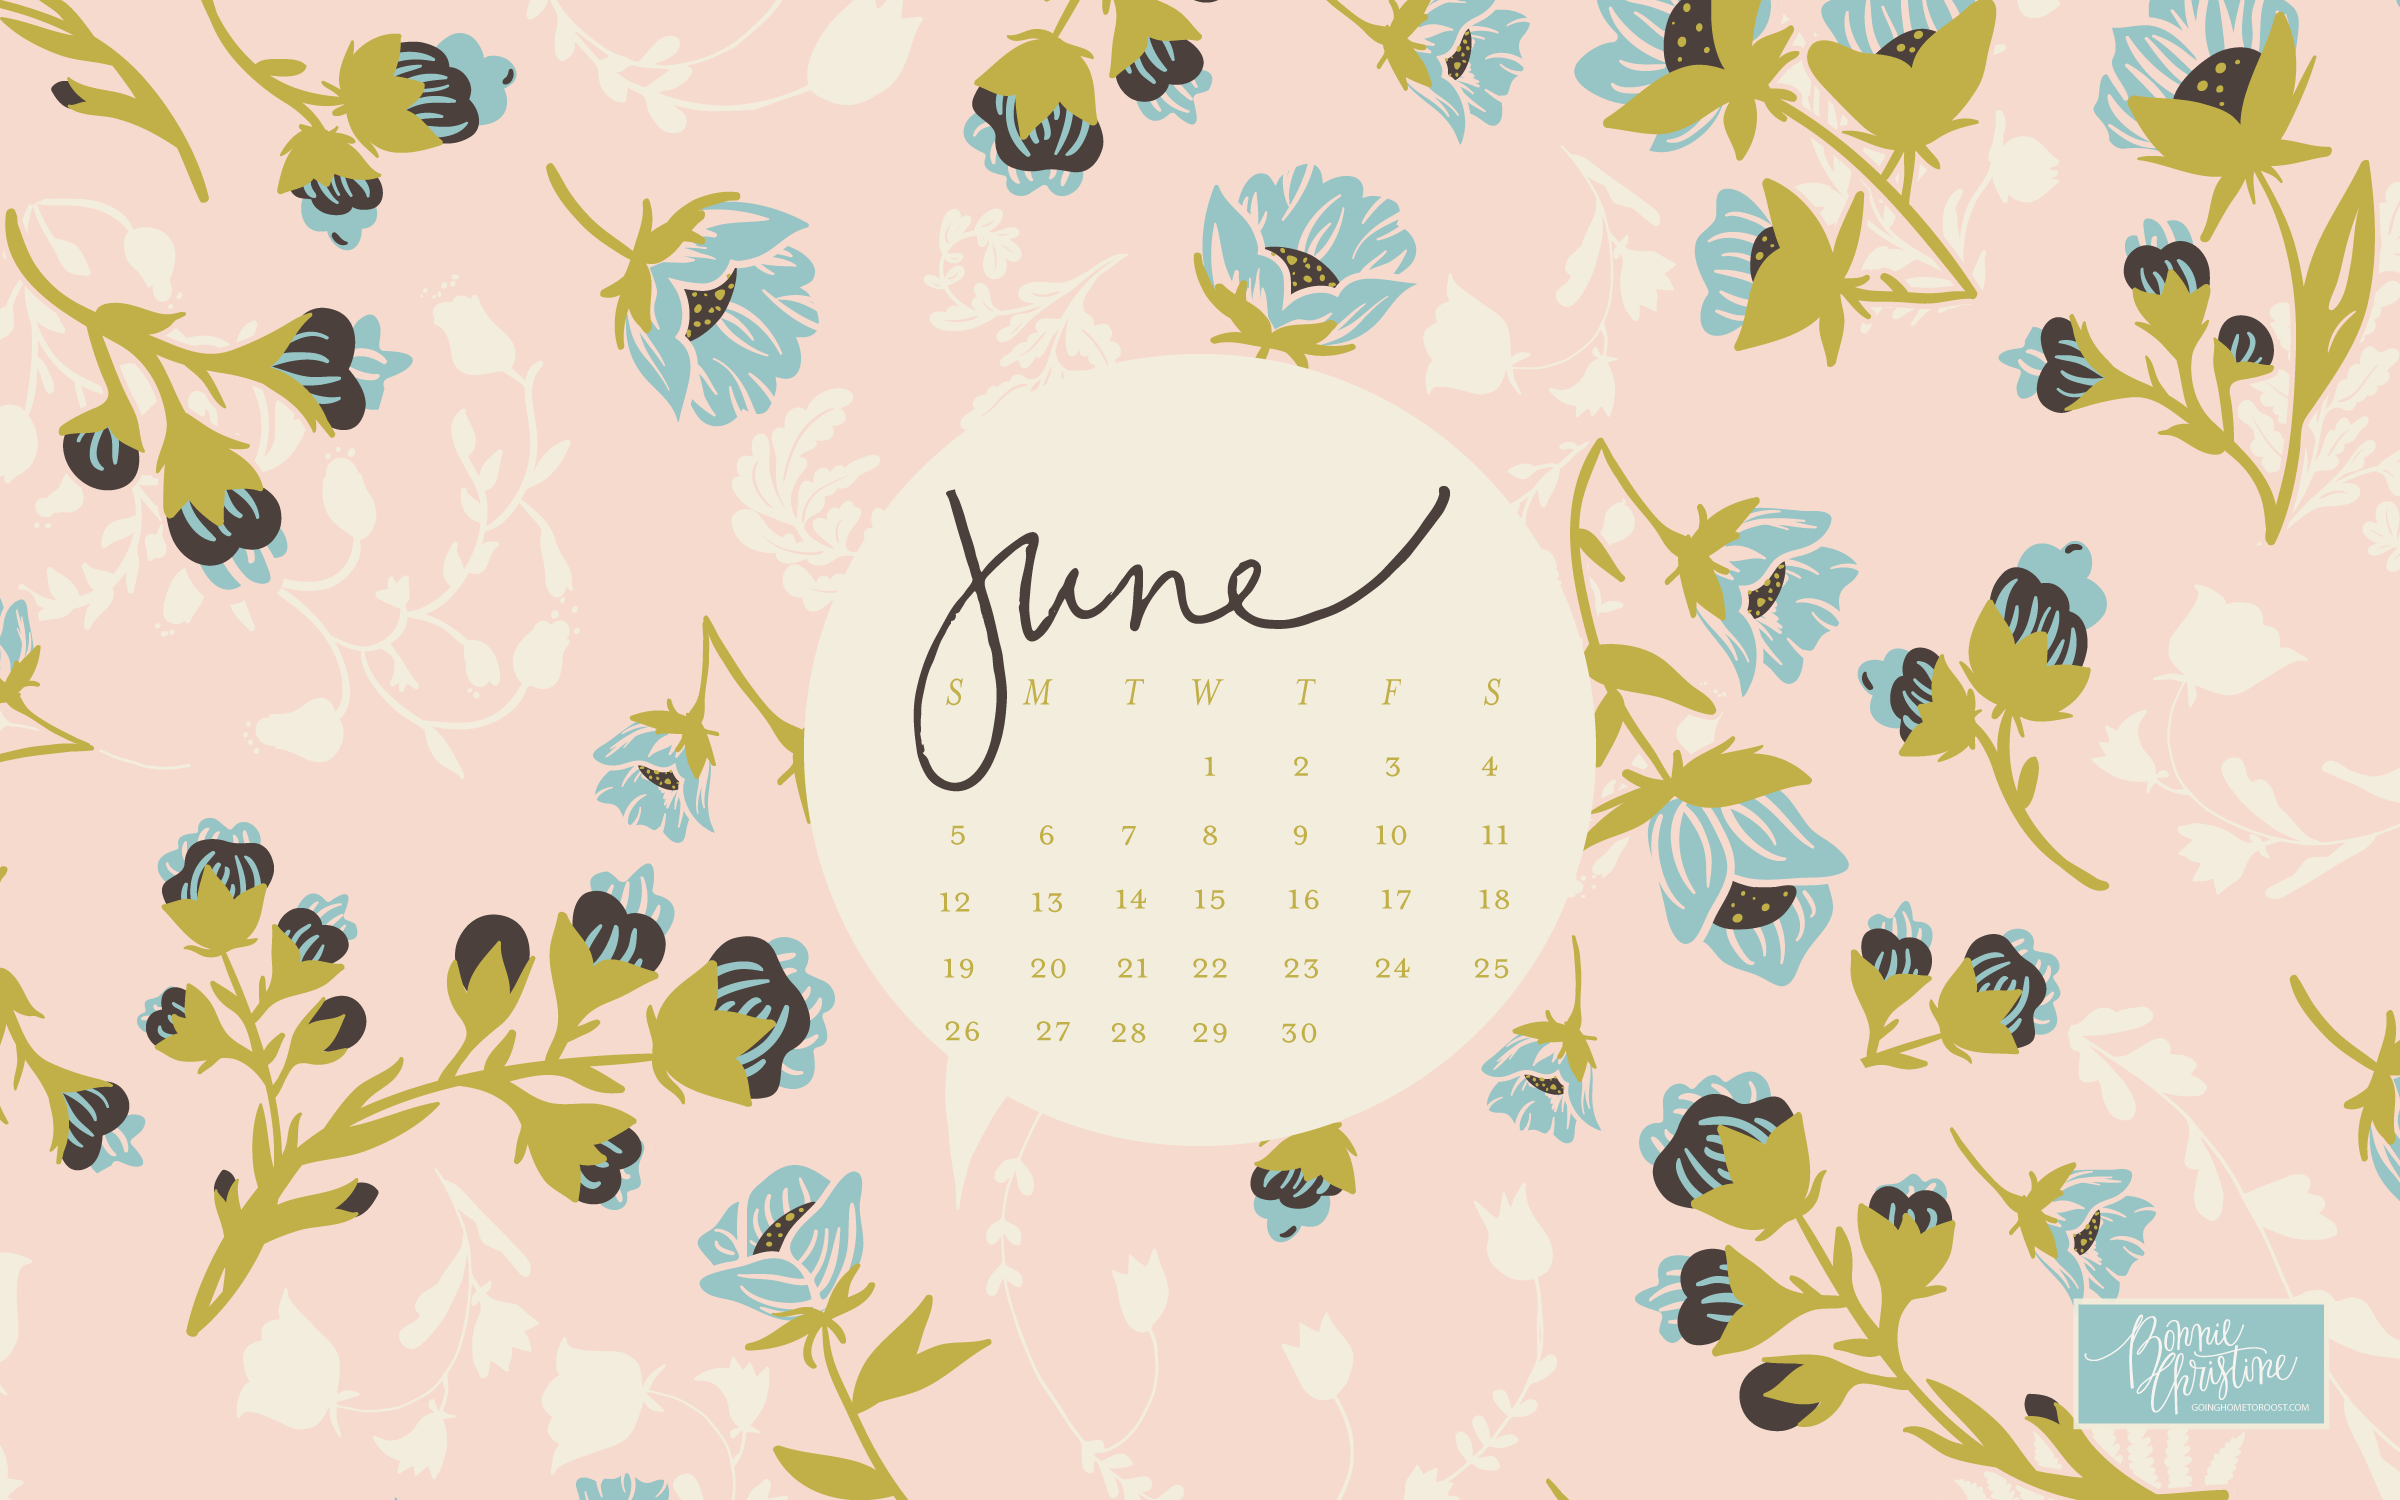 Floral June 2019 Desktop Calendar Wallpaper